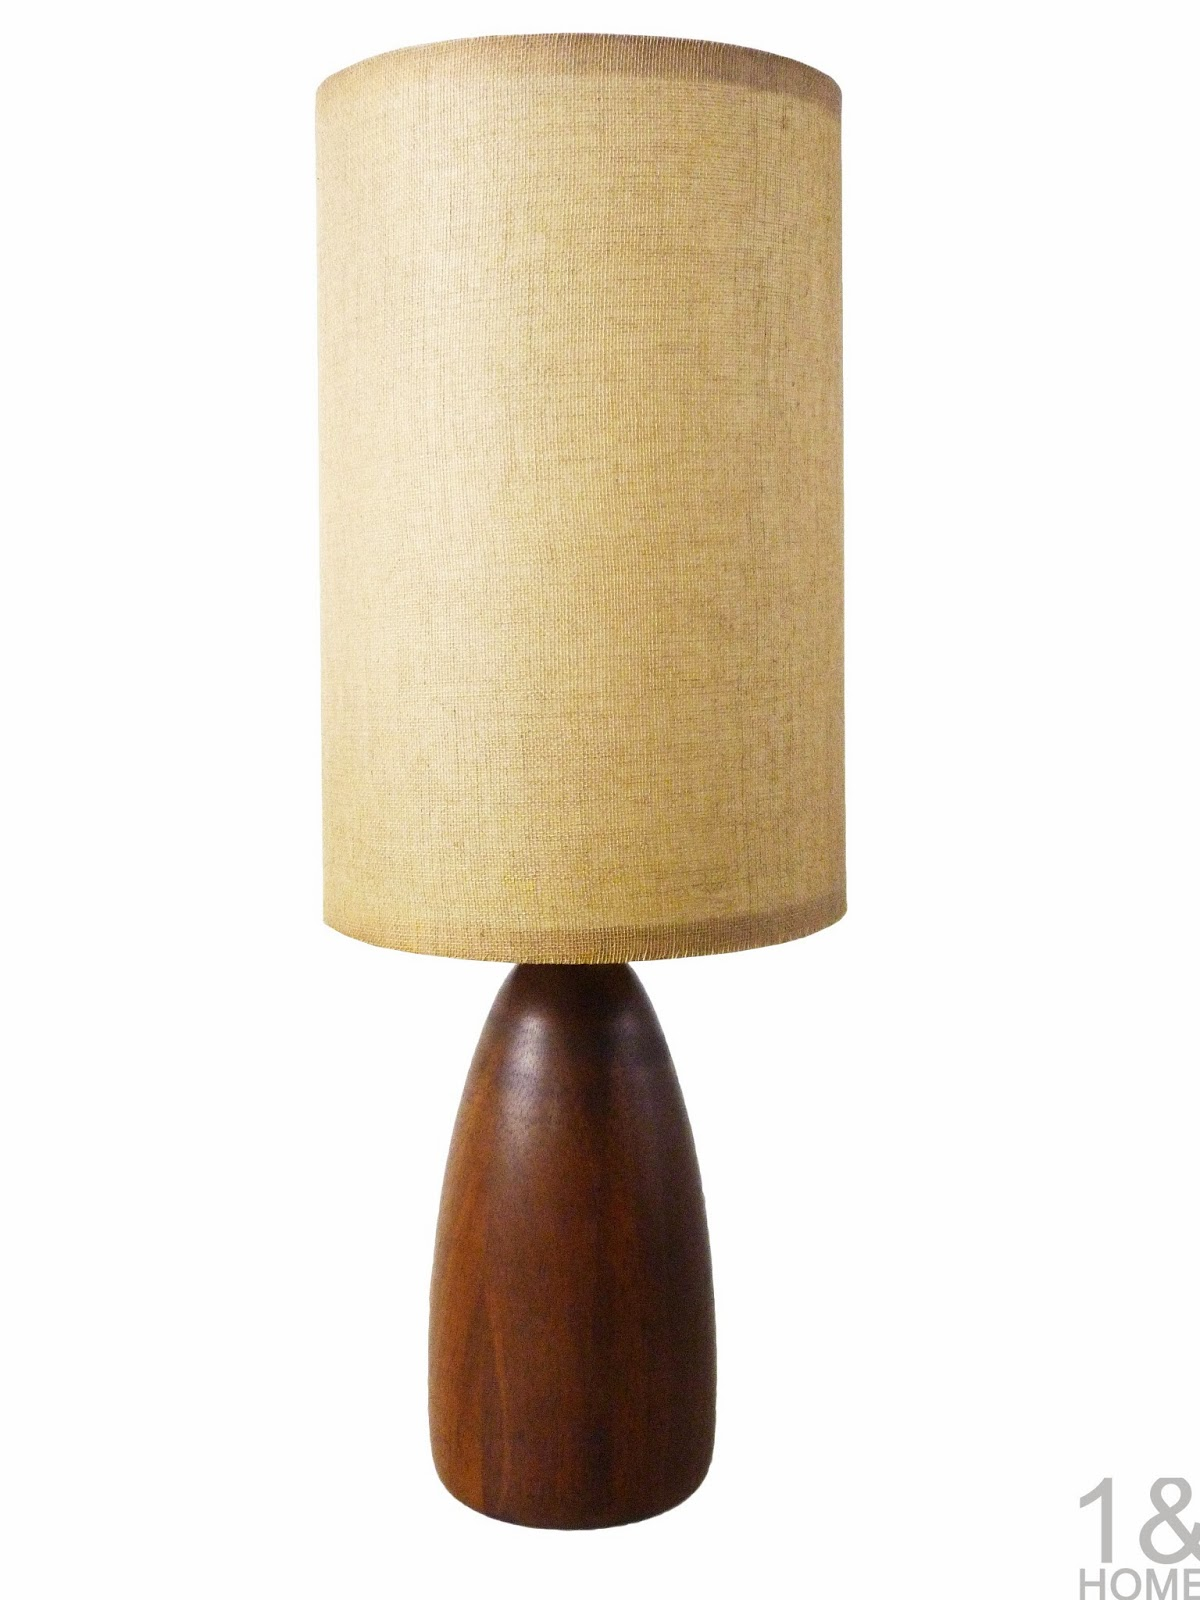 Danish Modern Turned Teak Table Lamp